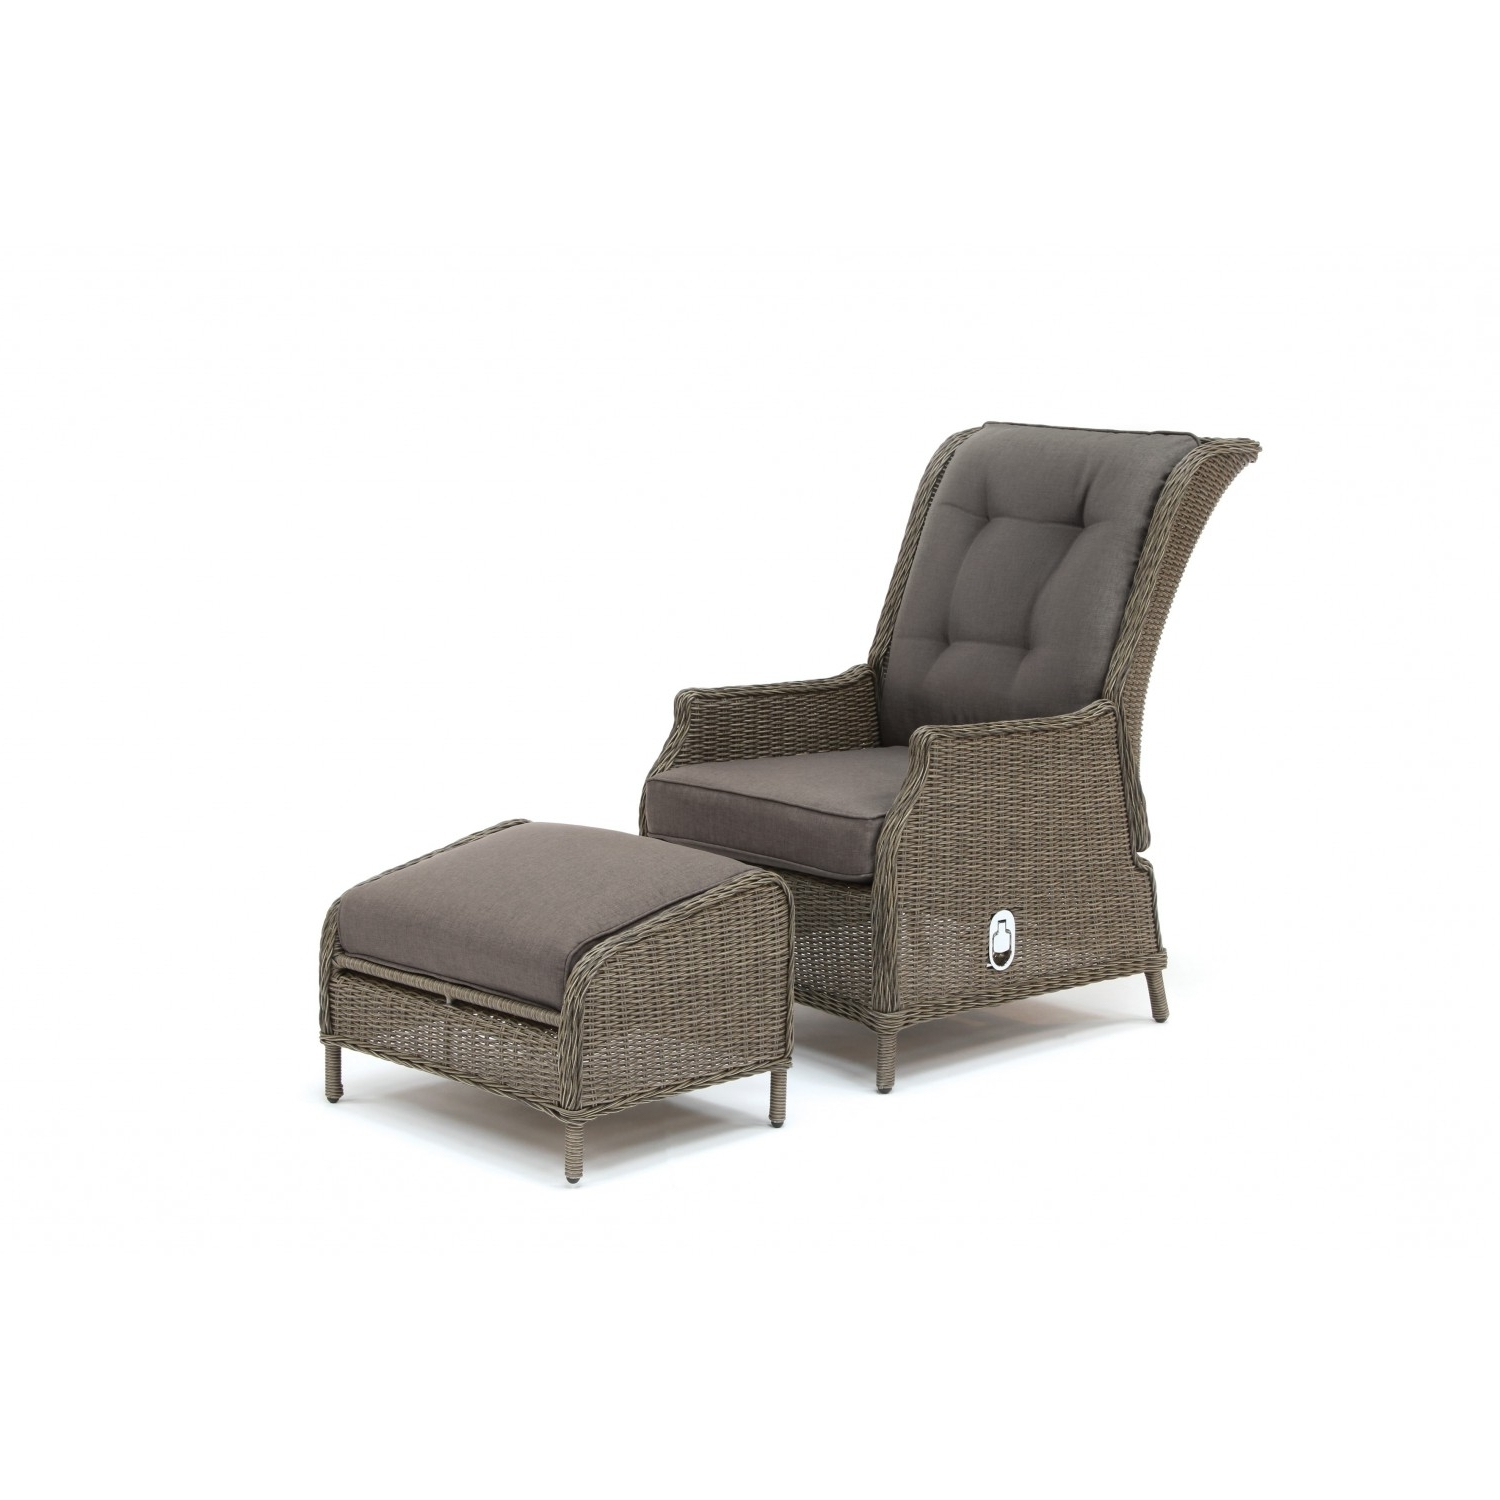 Kettler Chaise Lounge Chairs within Best and Newest Kettler Jarvis Recliner With Footstool - Rattan Inc Taupe Cushions